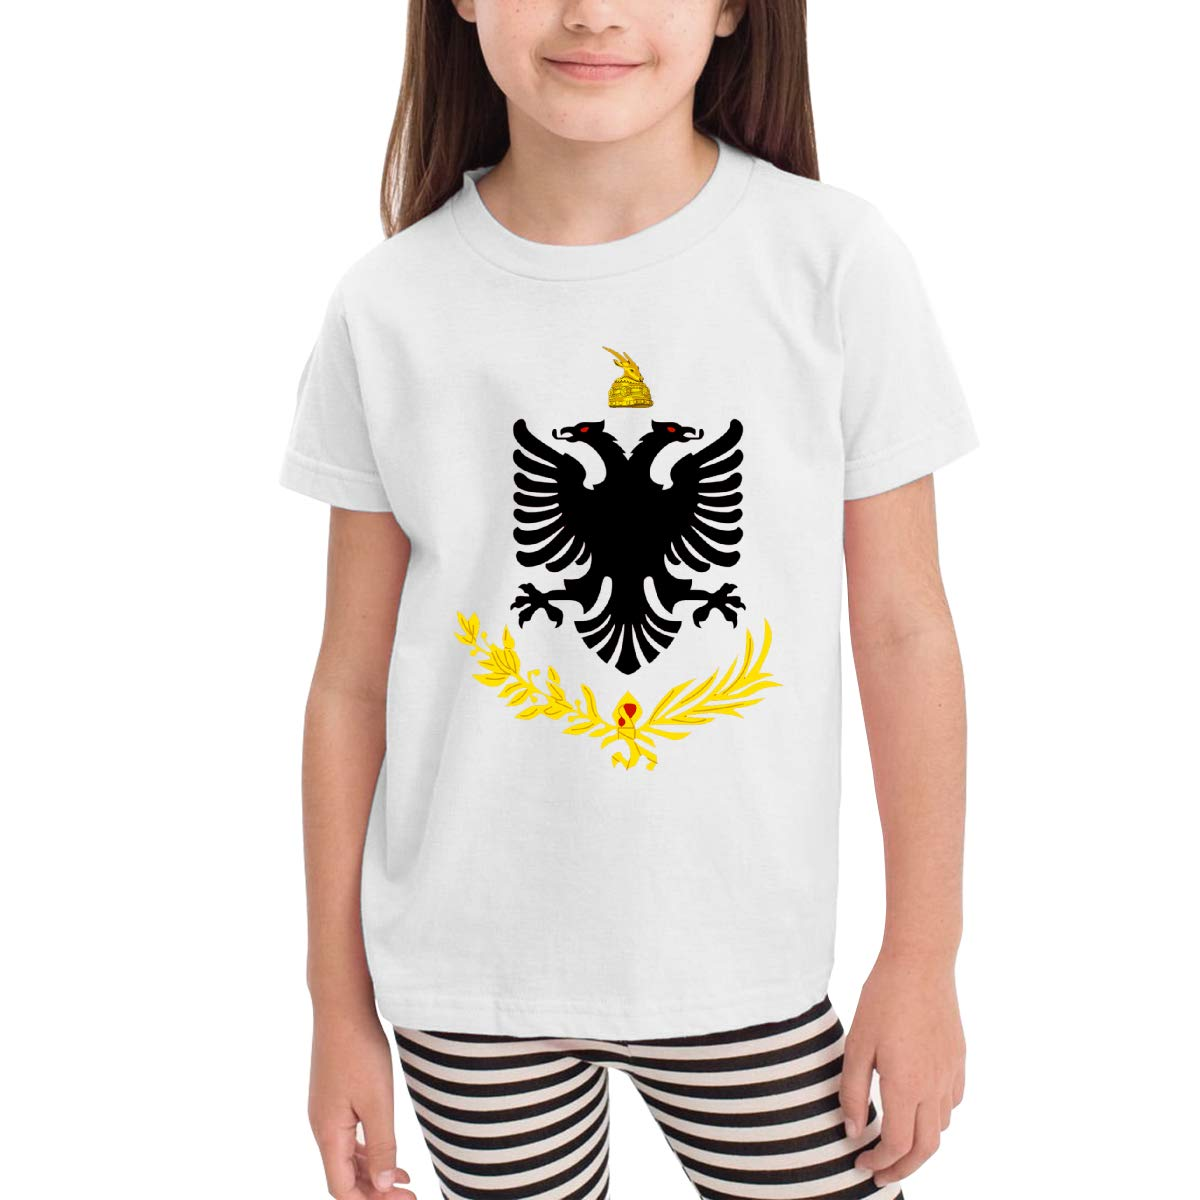 Albanian Eagle 100/% Cotton Toddler Baby Boys Girls Kids Short Sleeve T Shirt Top Tee Clothes 2-6 T